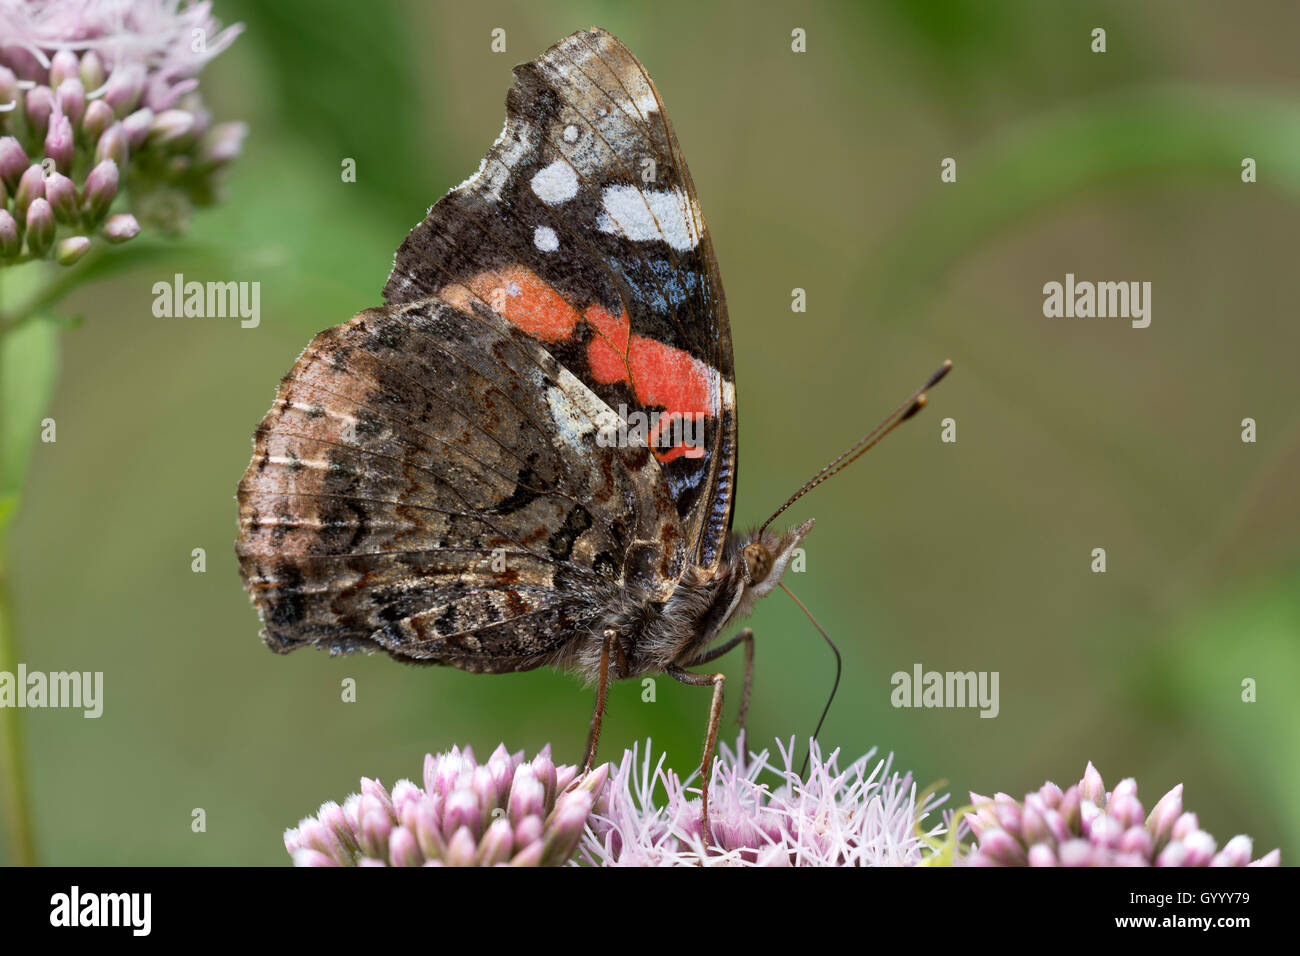 Red Admiral (Vanessa atalanta) on flower, Burgenland, Austria Stock Photo